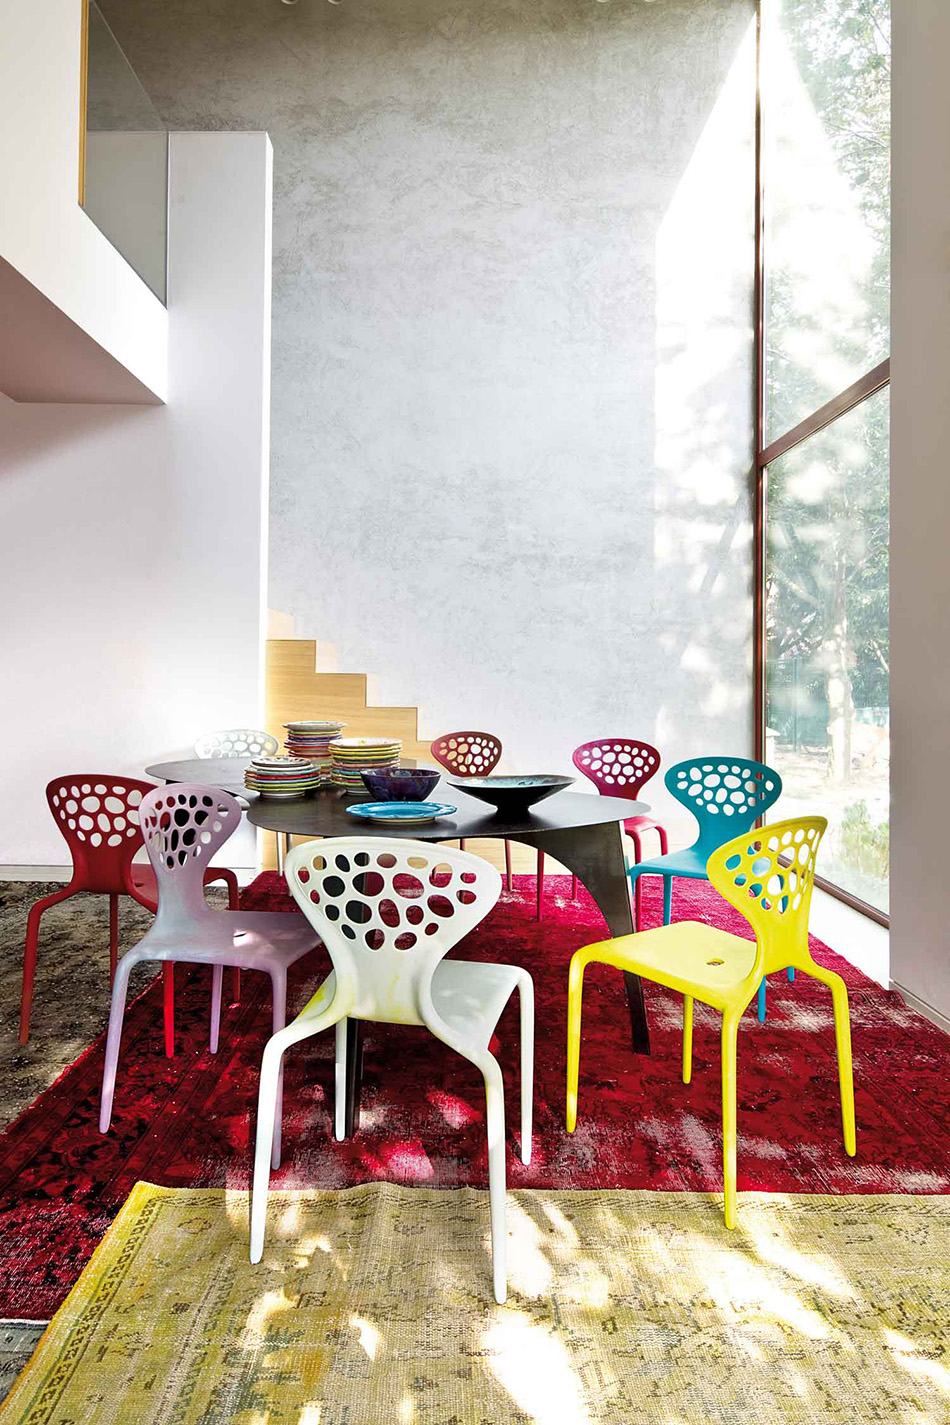 Moroso-Product-Shot-at-Patrizia-Moroso-House-Yellowtrace-05